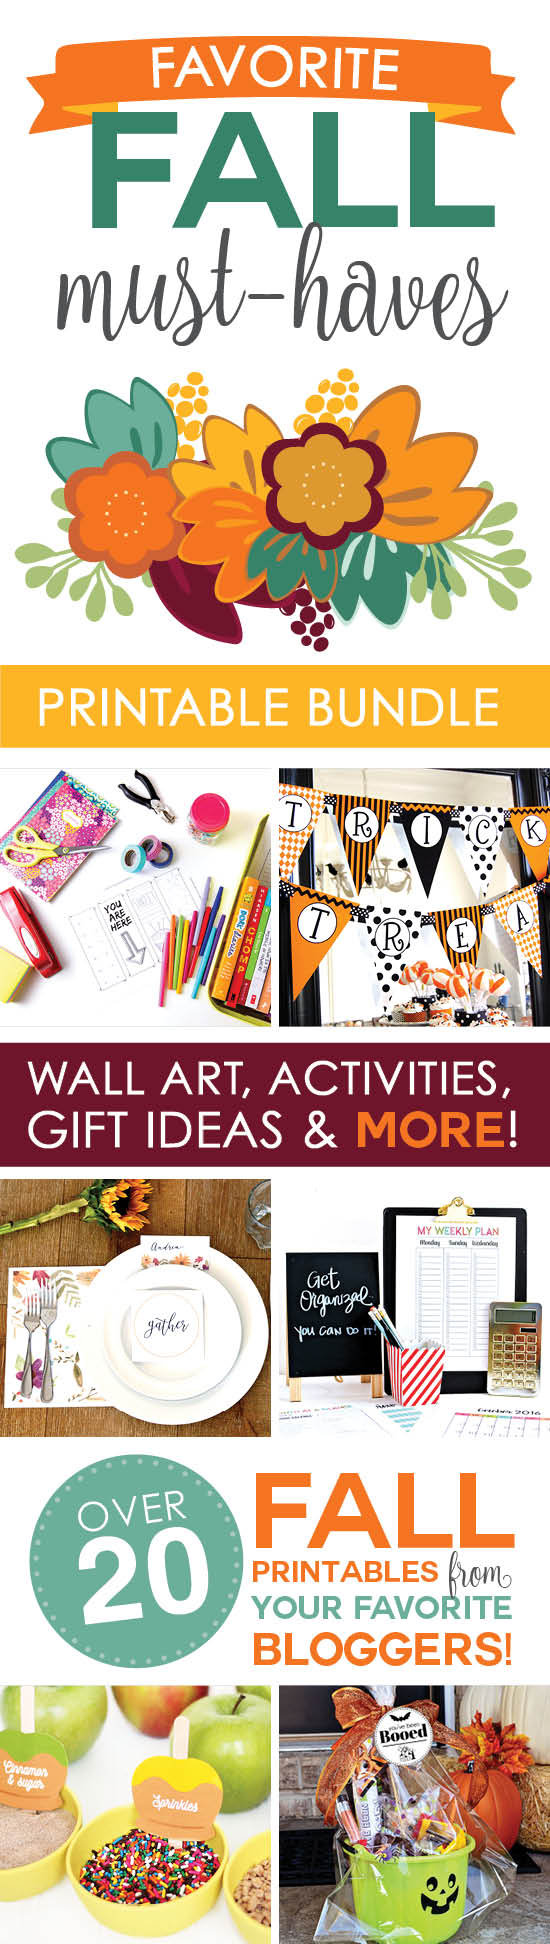 Your Favorite Fall Printables Bundle for 2016! 3 Days Only {OVER}